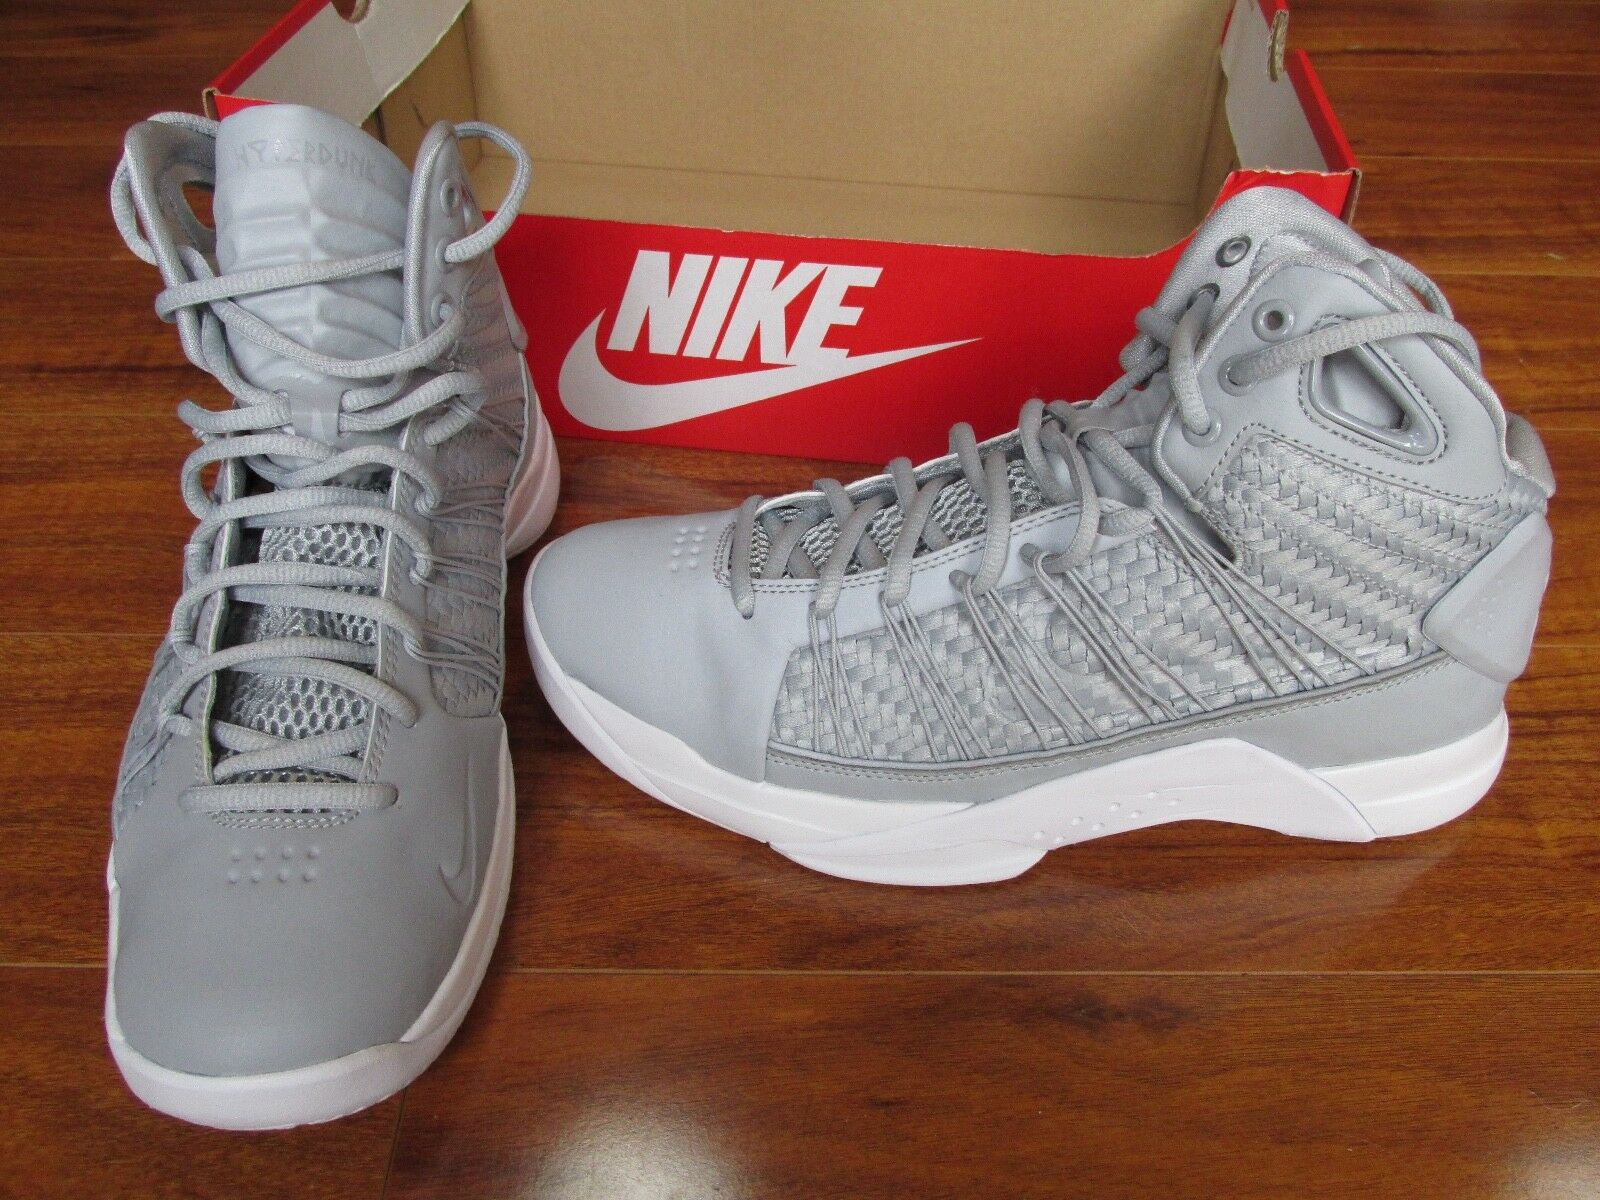 NEW NIKE Hyperdunk Lux Basketball Shoes MENS Size 9 Grey White 818137-002 170.